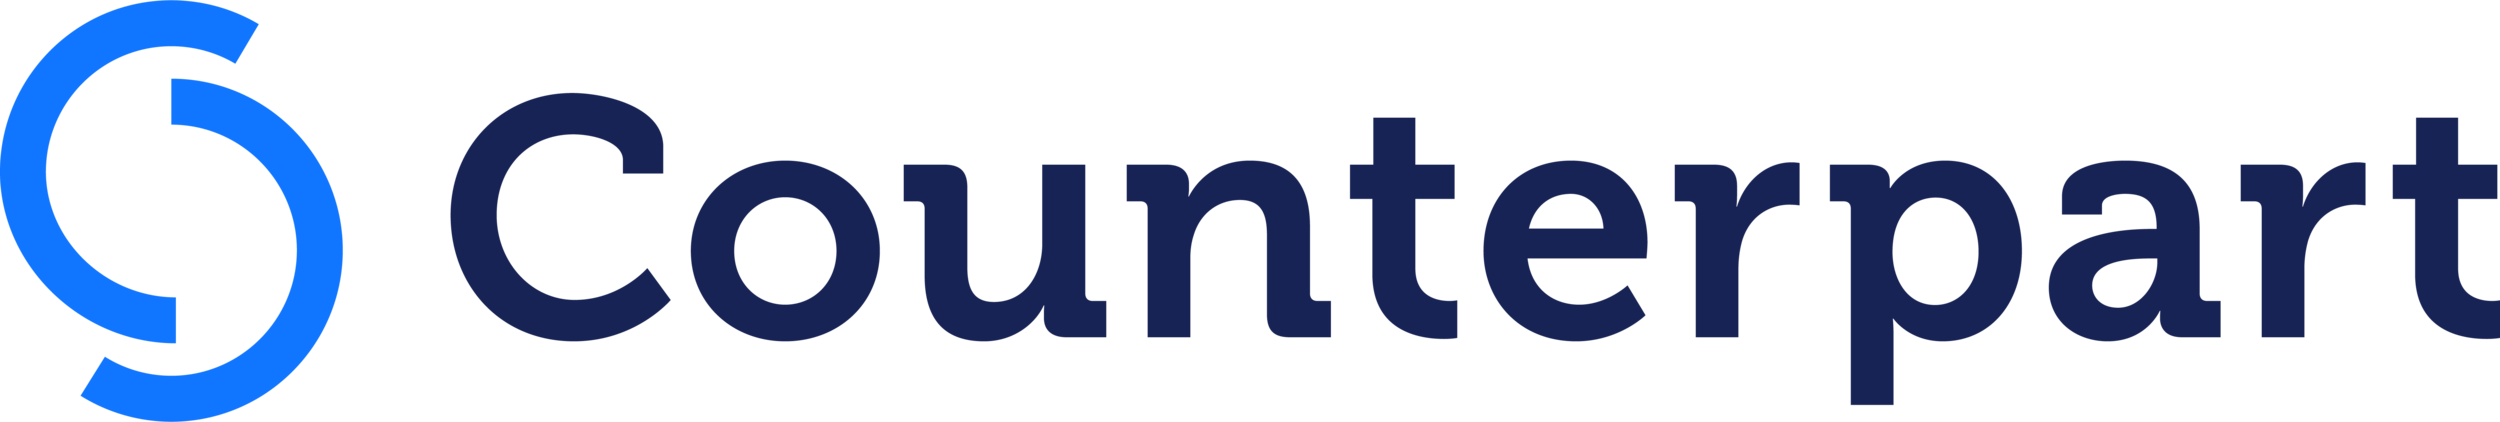 Counterpart Logo.png